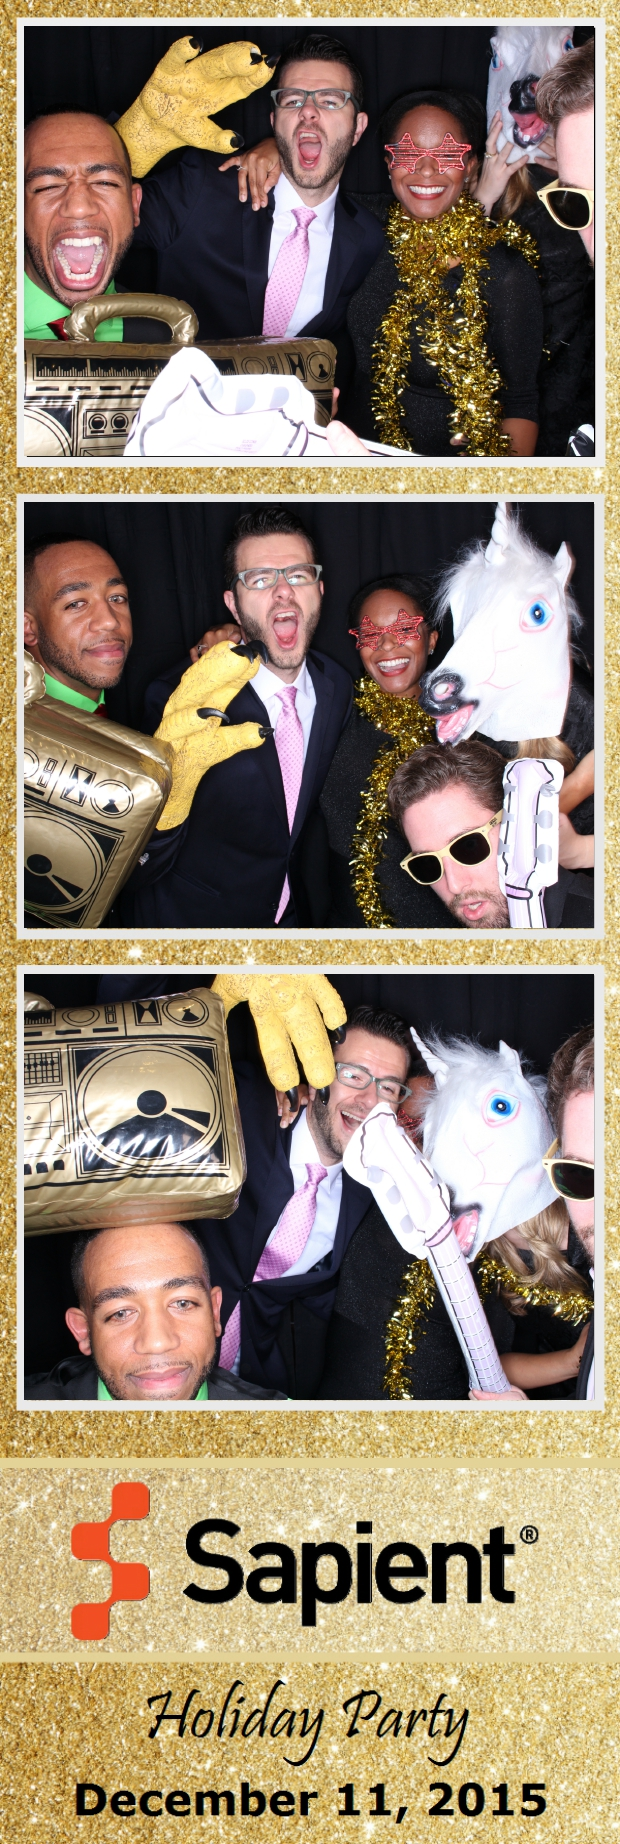 Guest House Events Photo Booth Sapient Holiday Party (73).jpg